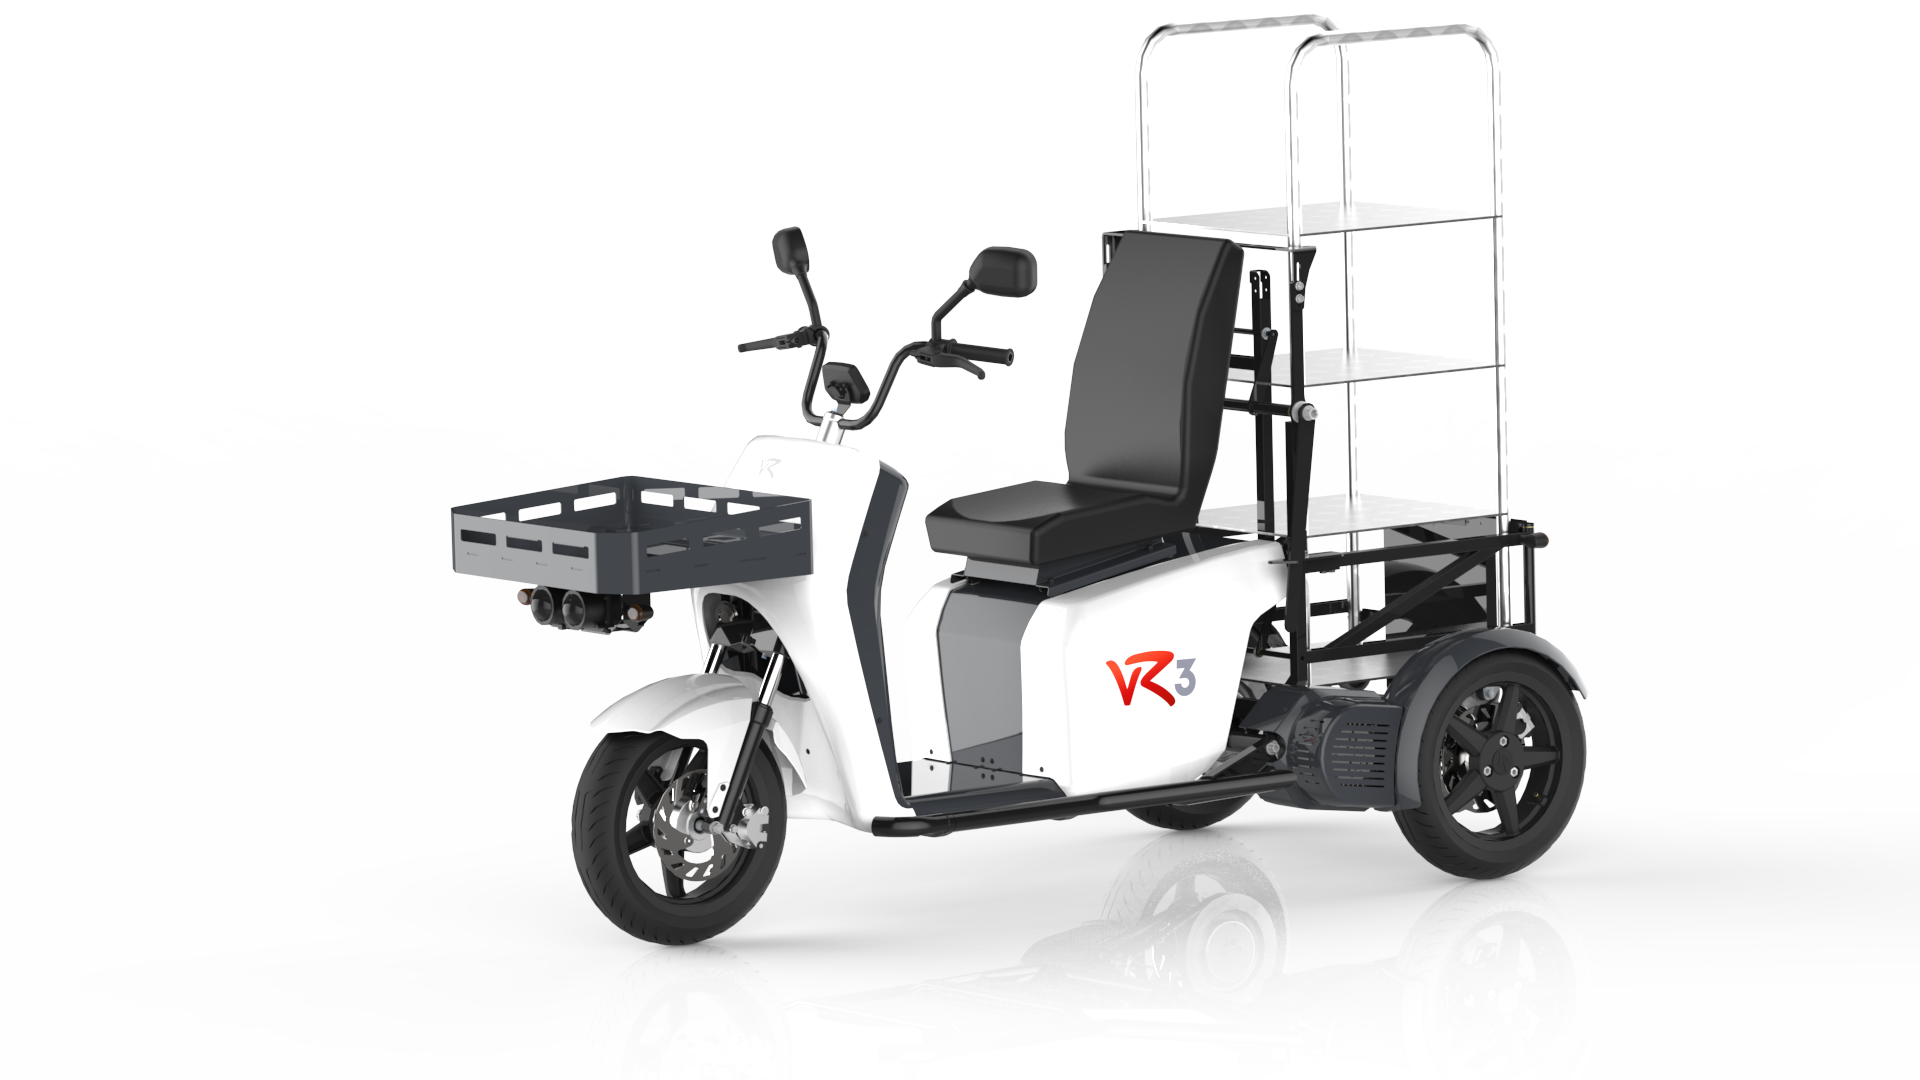 intra company transport vehicles vrbikes electric vehicles and